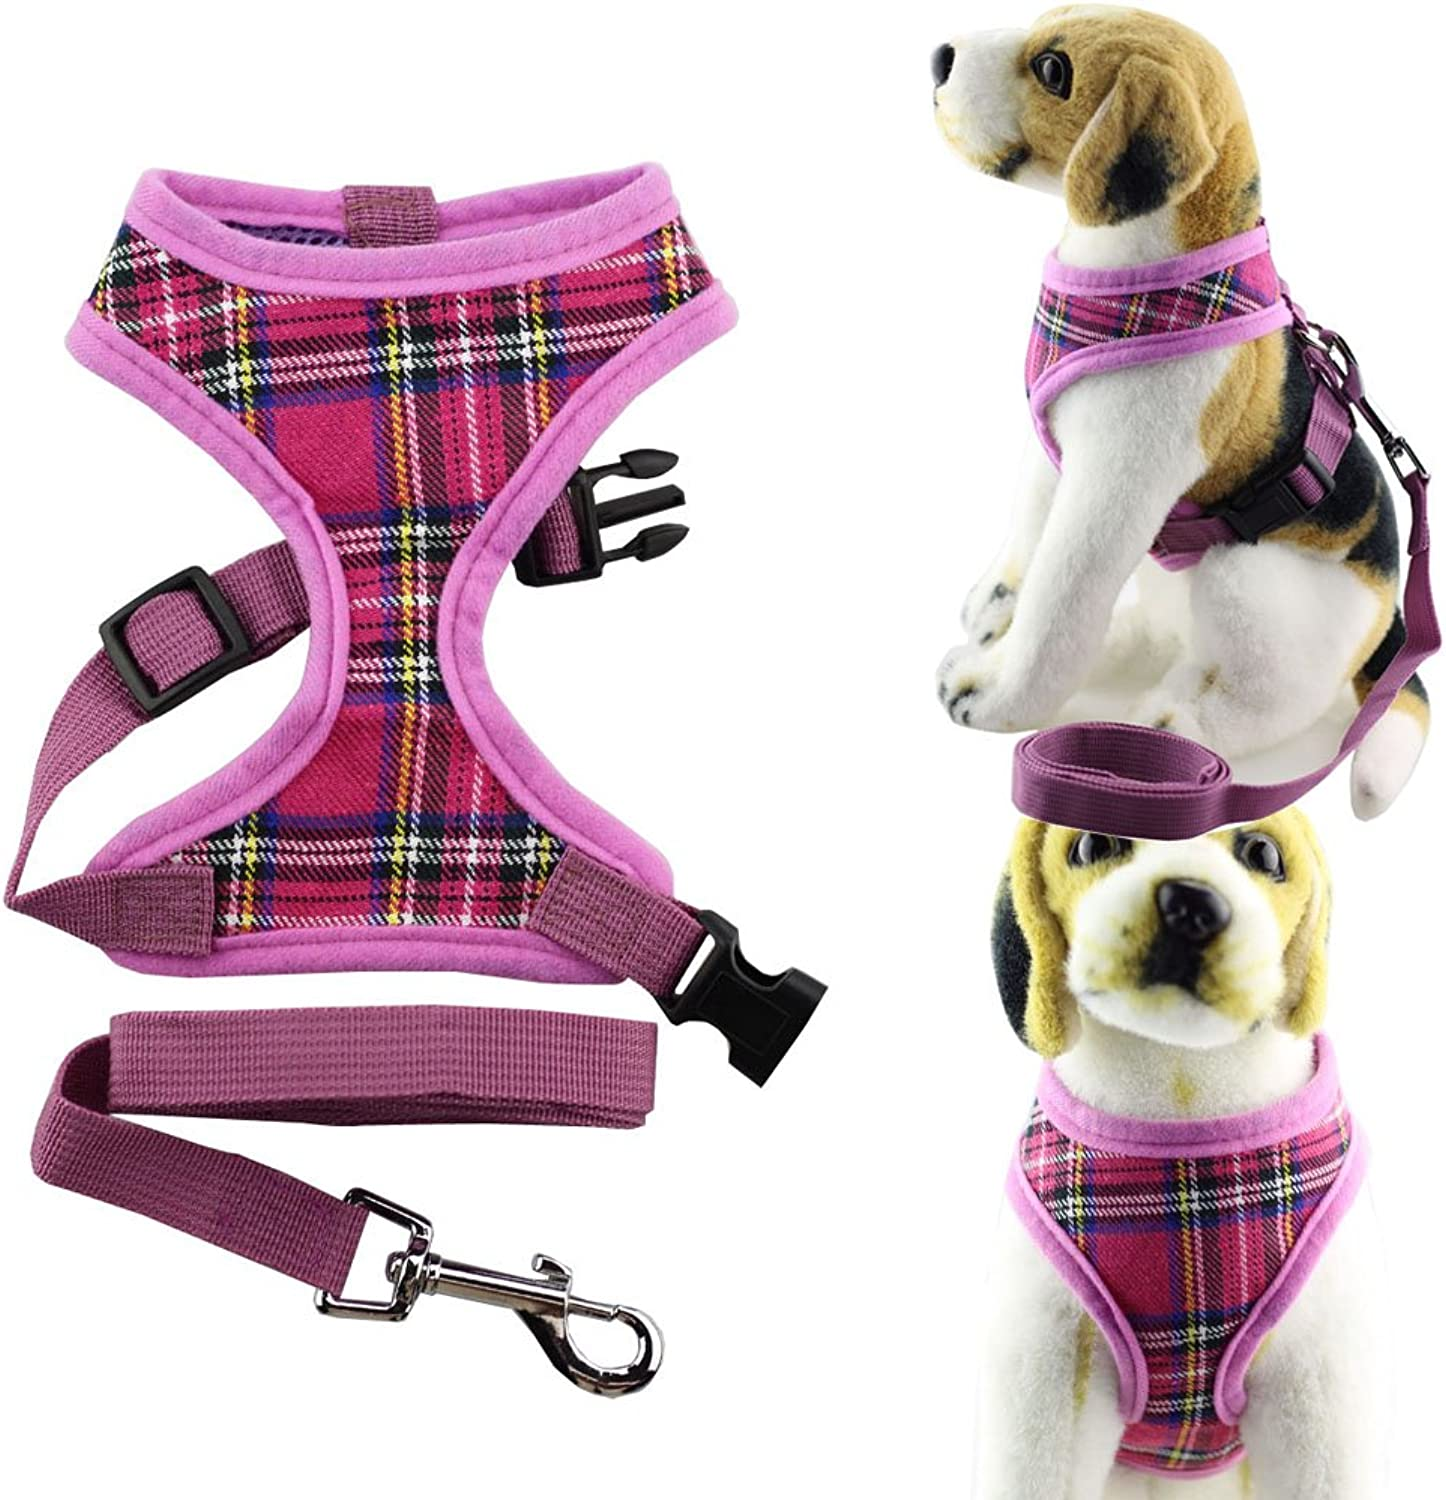 Bolbove Pet Adjustable Classic Plaid Mesh Harness and Leash Set for Cats & Dogs (Large, Pink)